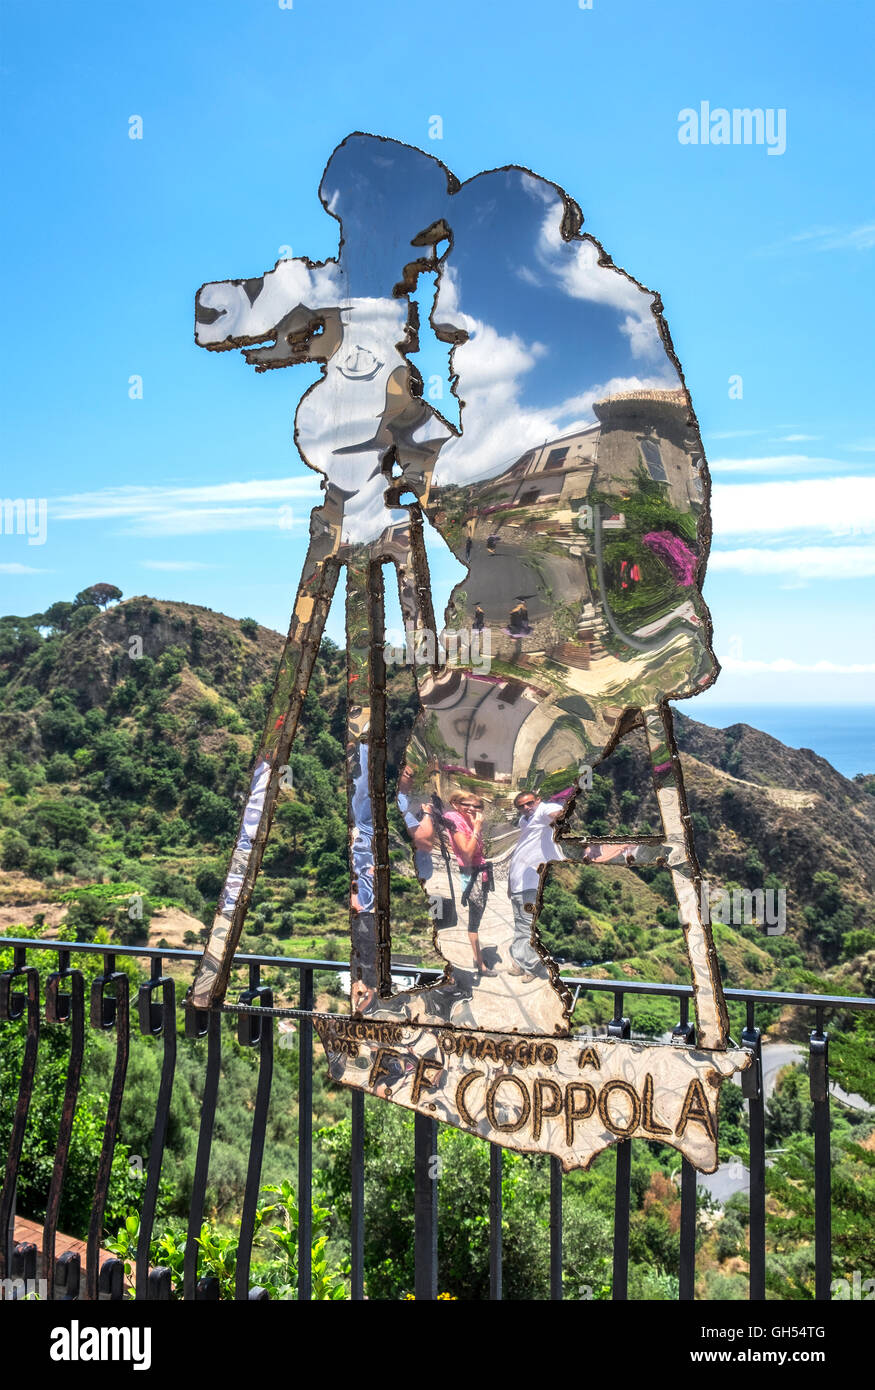 Savoca, Sicily, Francis Ford Coppola steel silhouette sculpture created by local artist Nino Ucchino. - Stock Image